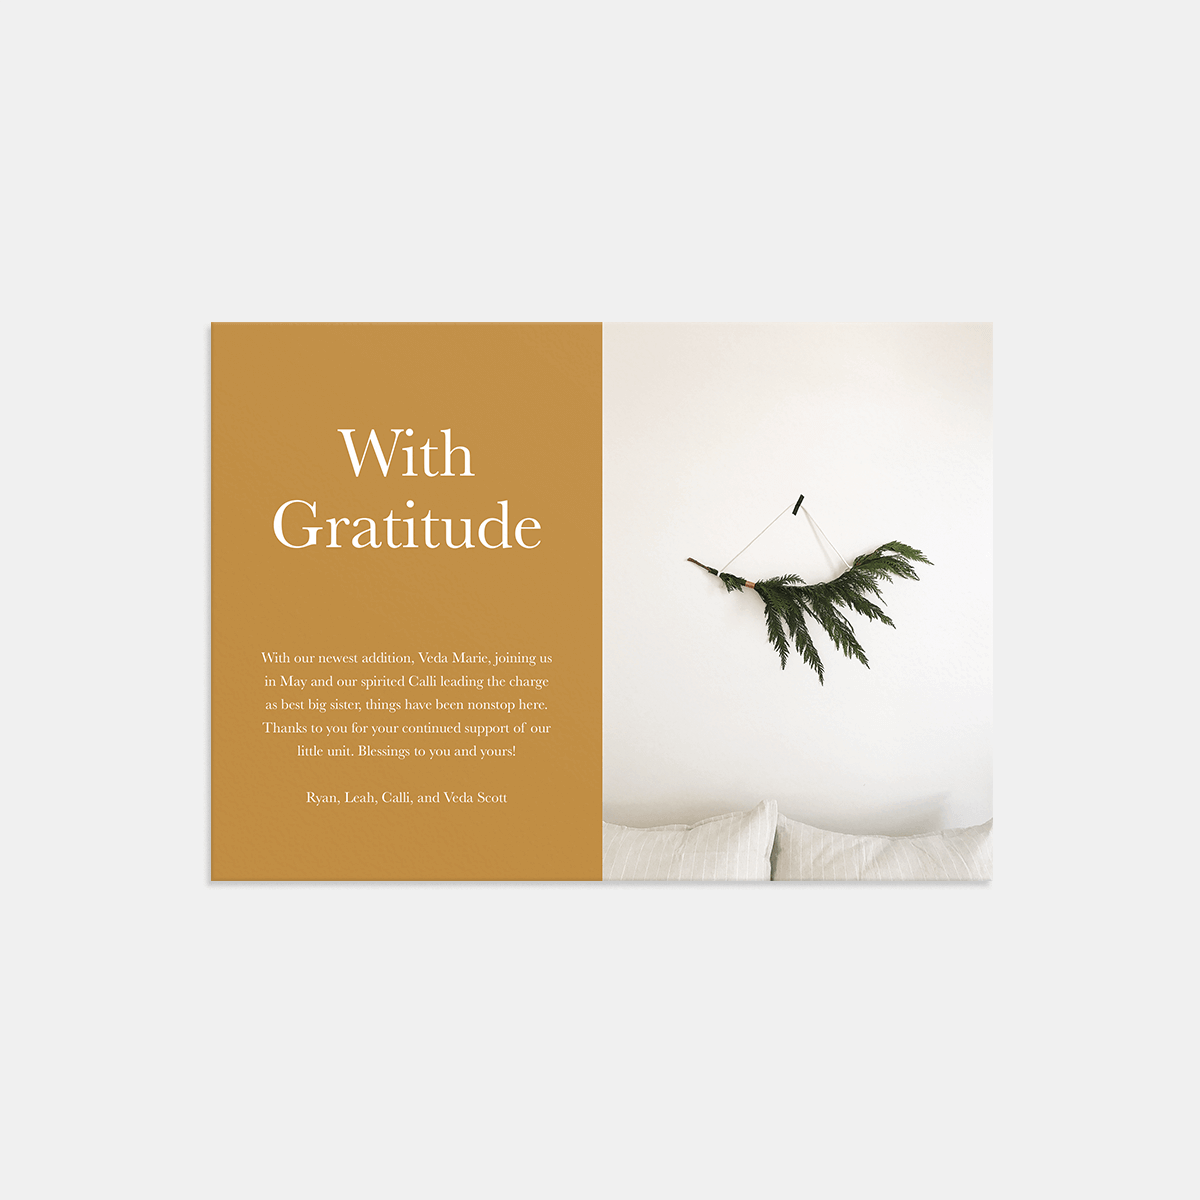 Same photo of pine branch on wall on holiday gratitude card